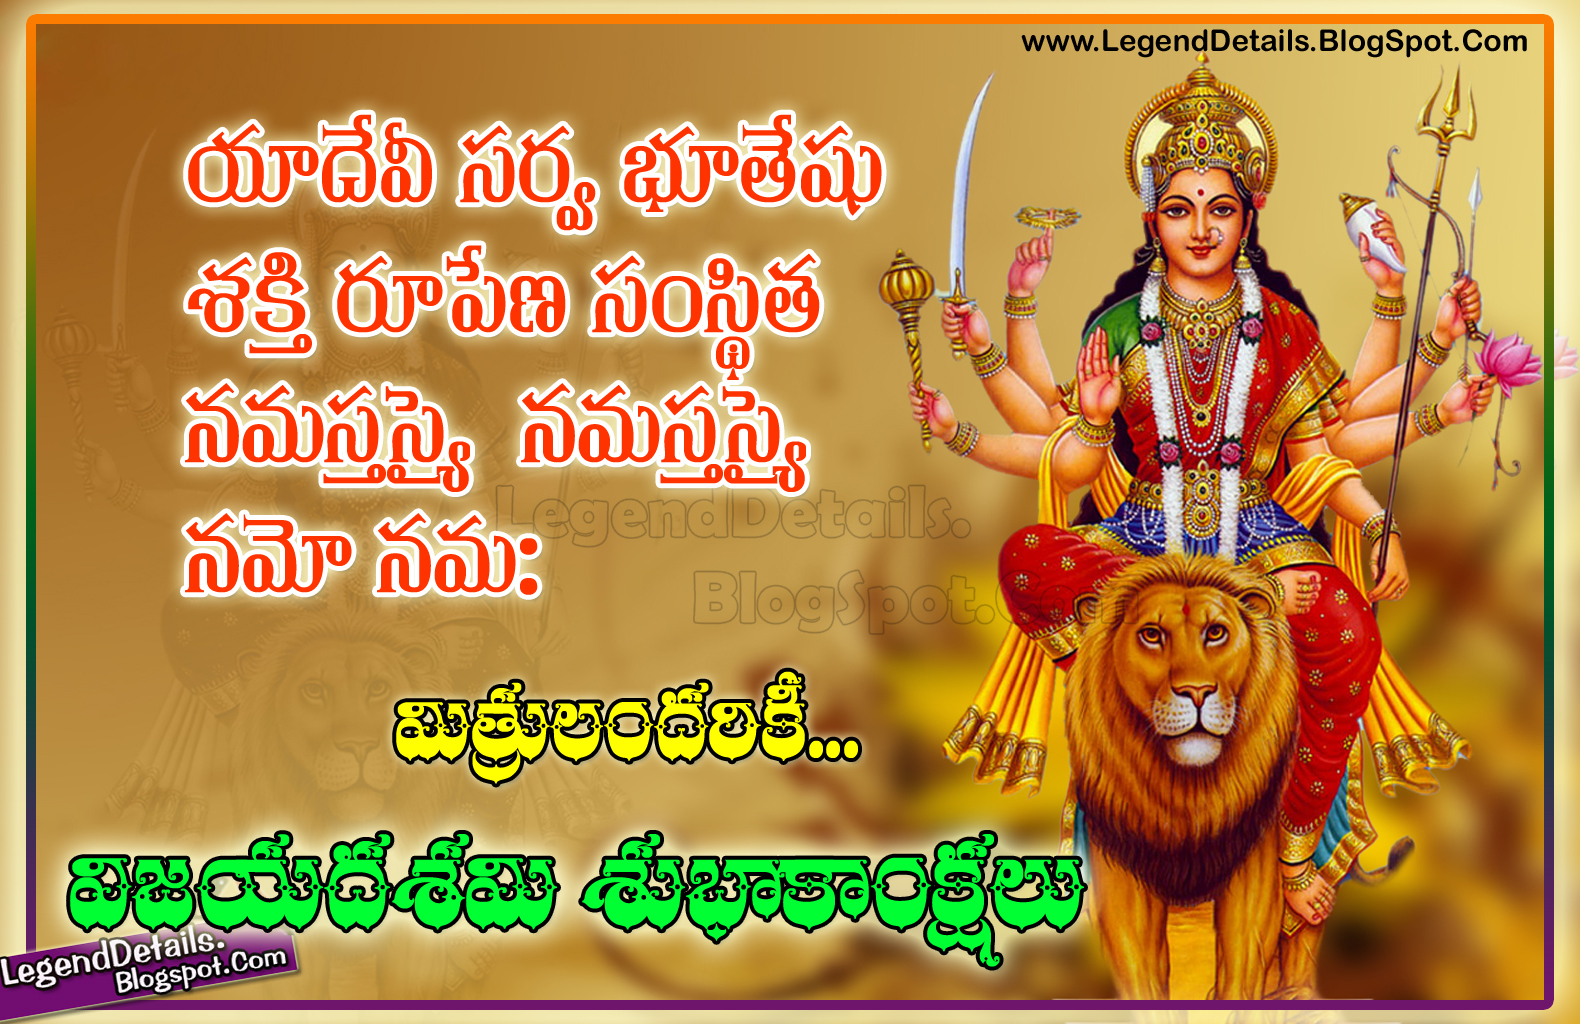 Dussehra wishes greetings quotes in telugu legendary quotes dussehra wishes greetings quotes in telugu m4hsunfo